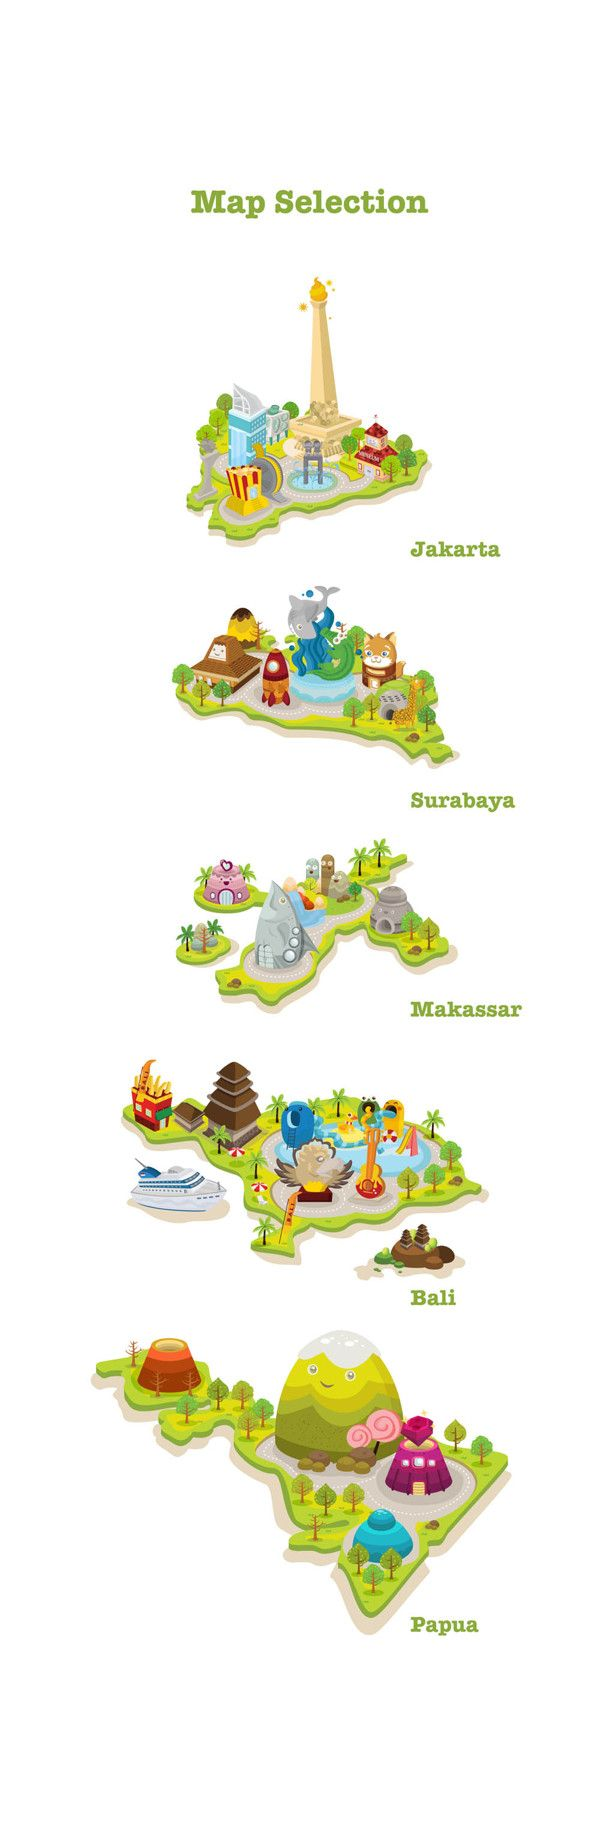 Indonesian citiies - Credoland by Tommy Chandra, via Behance  Bits of Indonesia